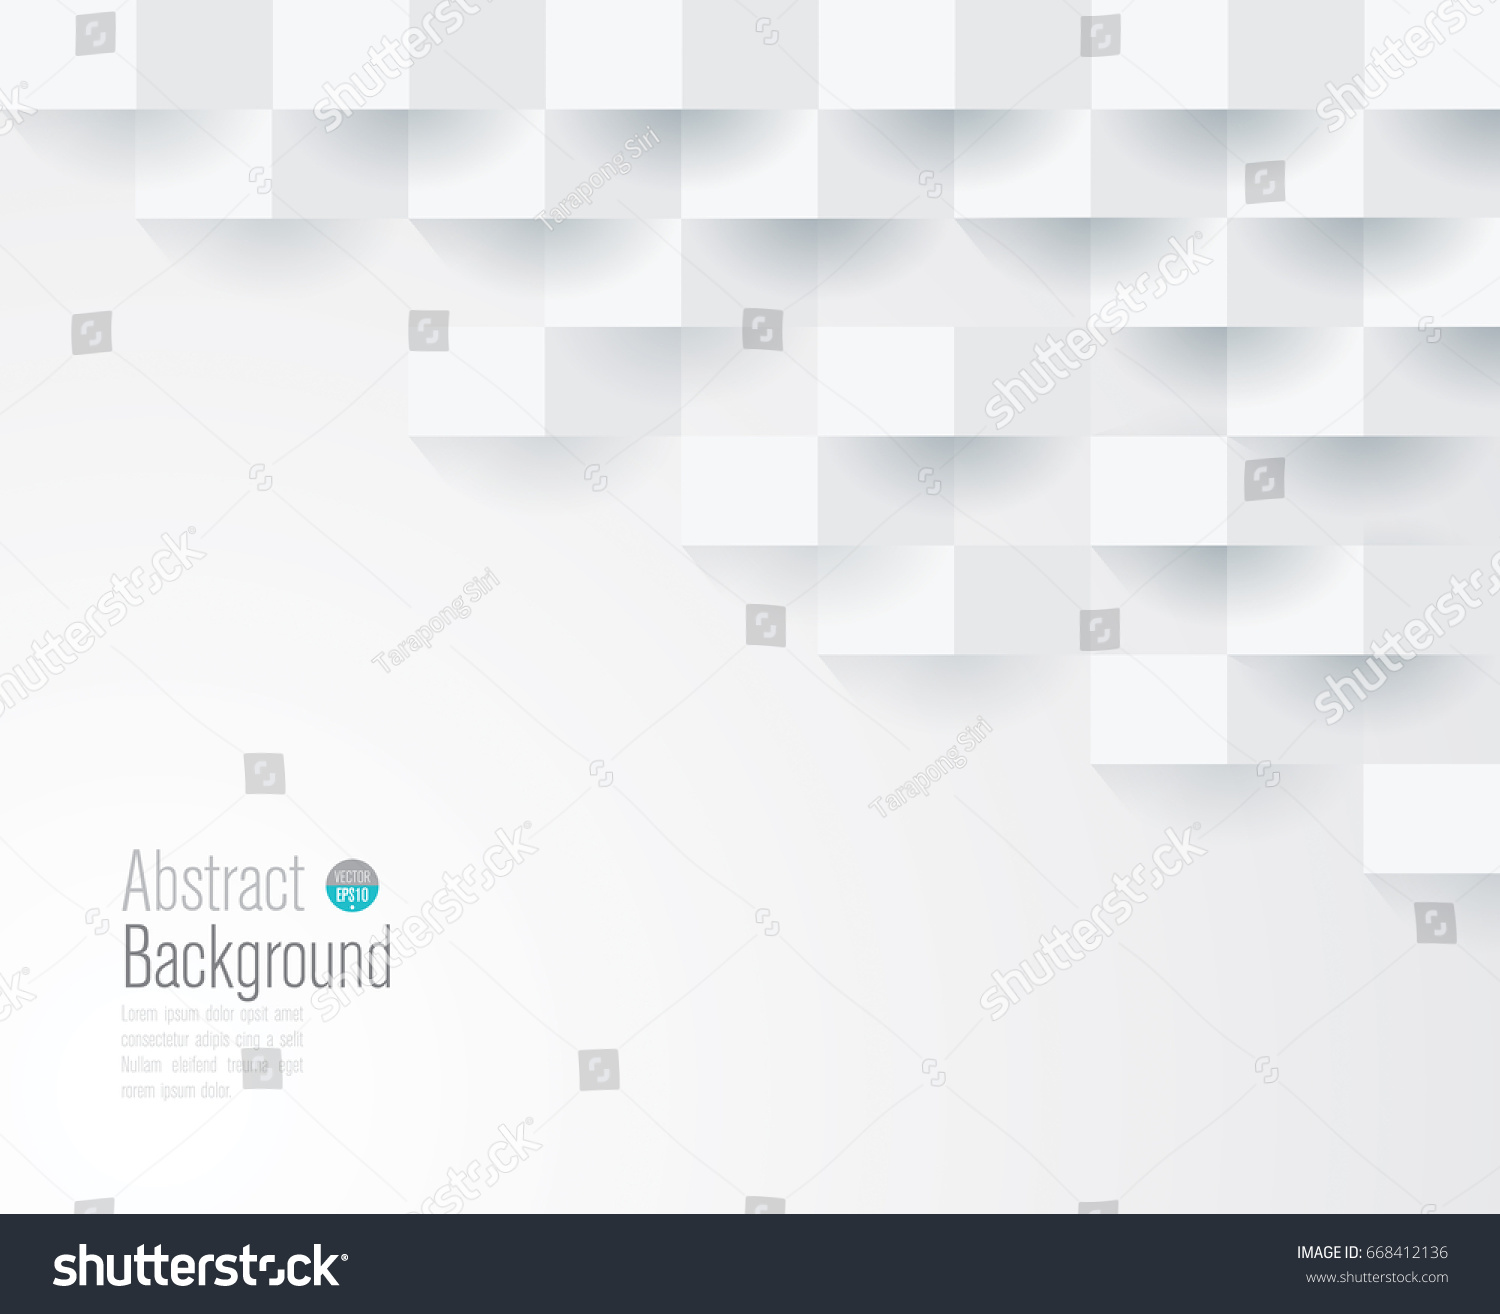 White geometric texture. Vector background can be used in cover design, book design, website background, CD cover, advertising. #668412136